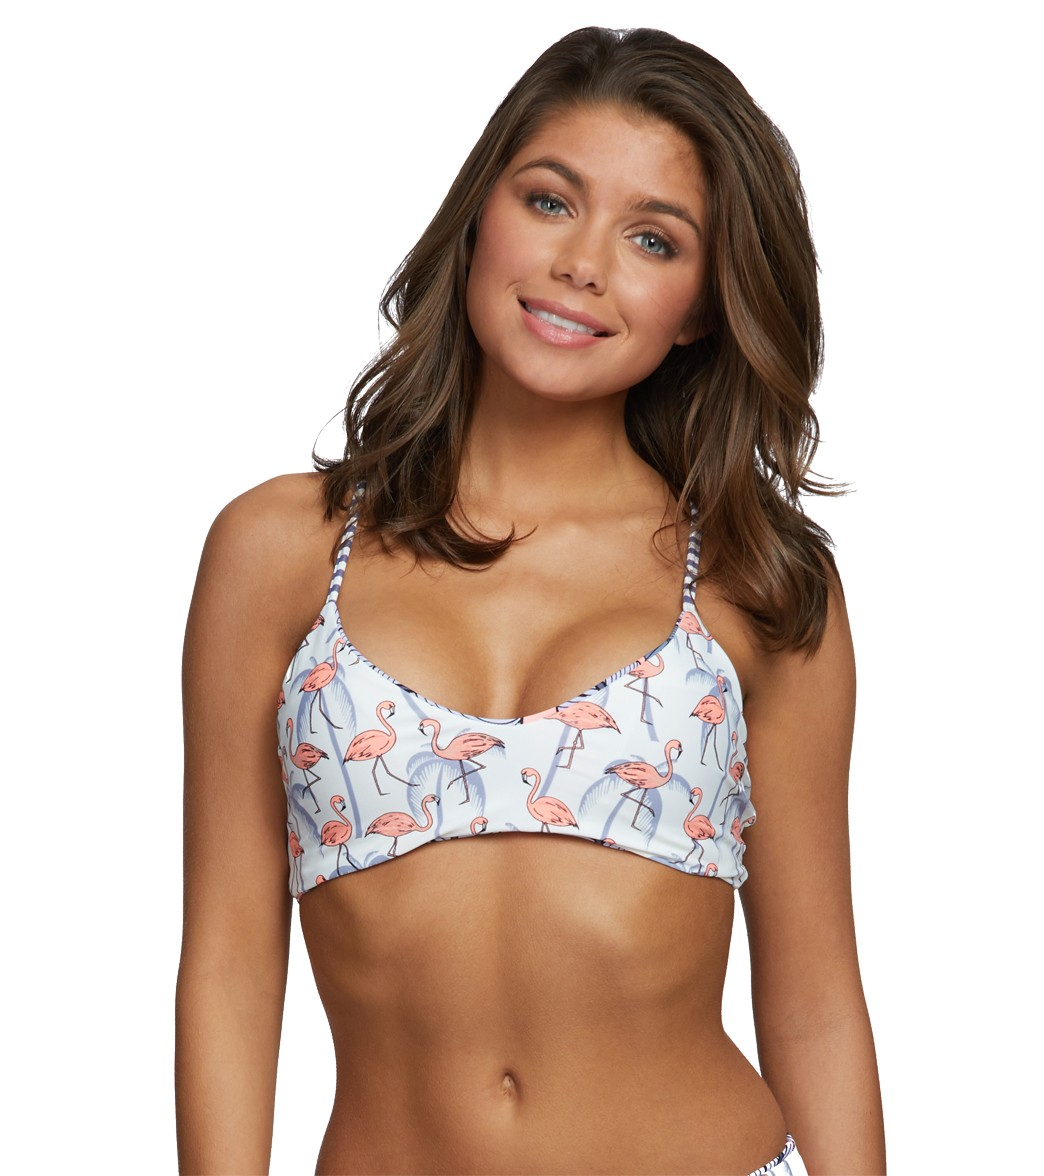 ca01329e25b5c Body Glove Freedom Alani Reversible Fixed Triangle Bikini Top. Splendid